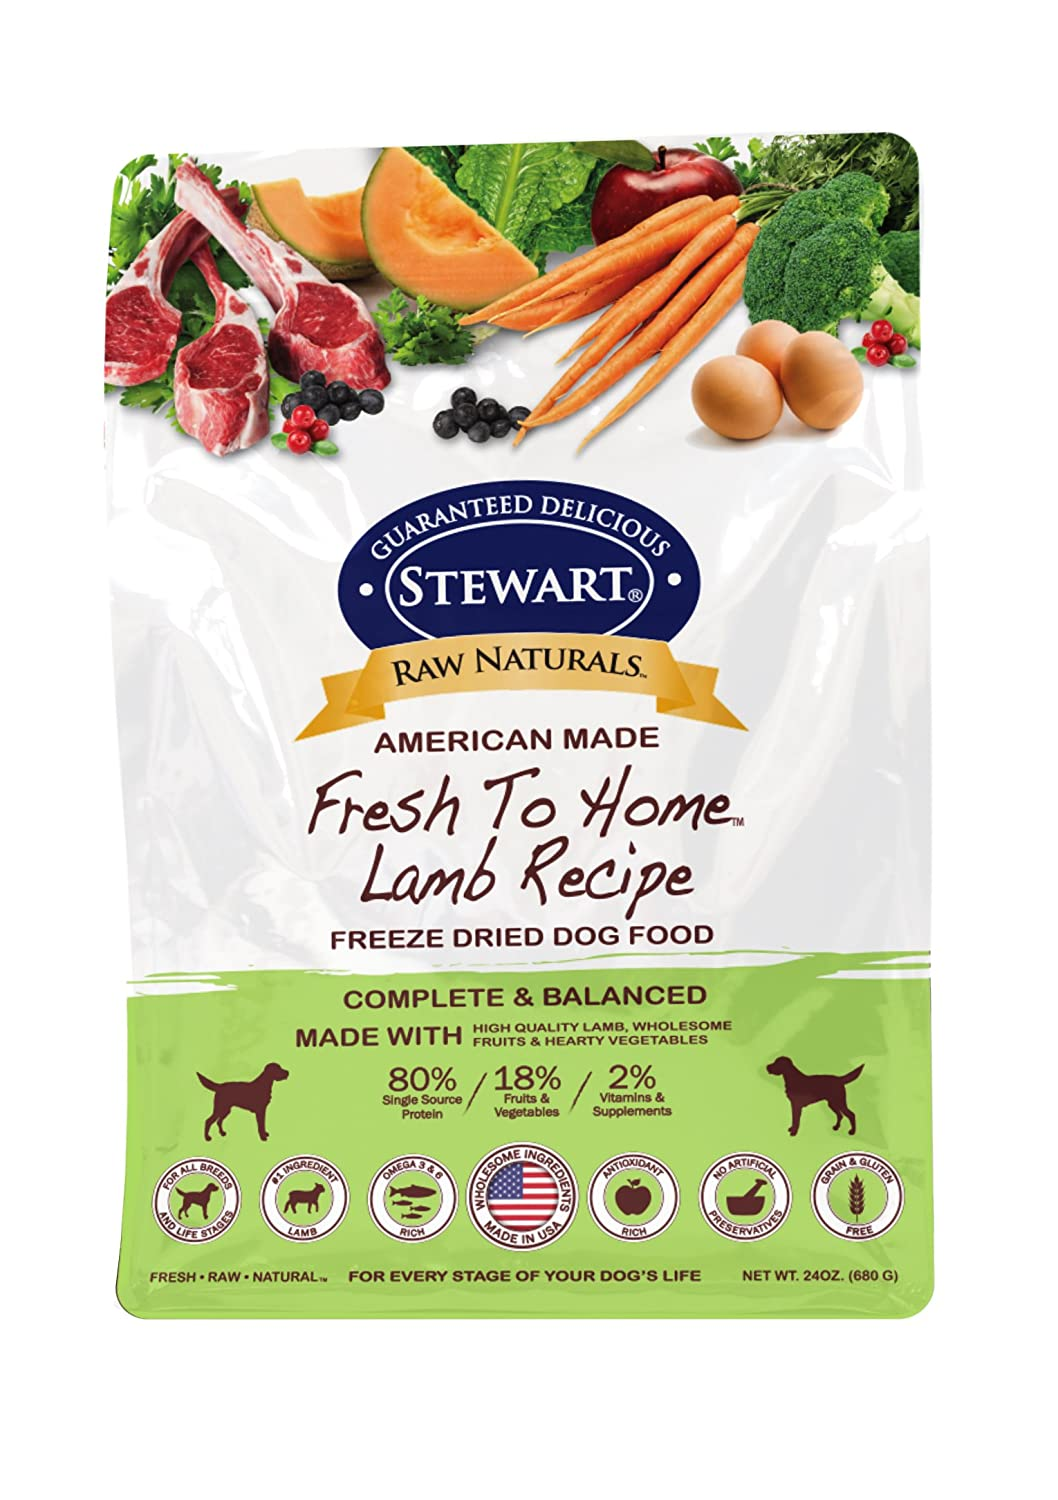 3. Stewart Raw Naturals Fresh To Home Freeze-Dried Dog Food